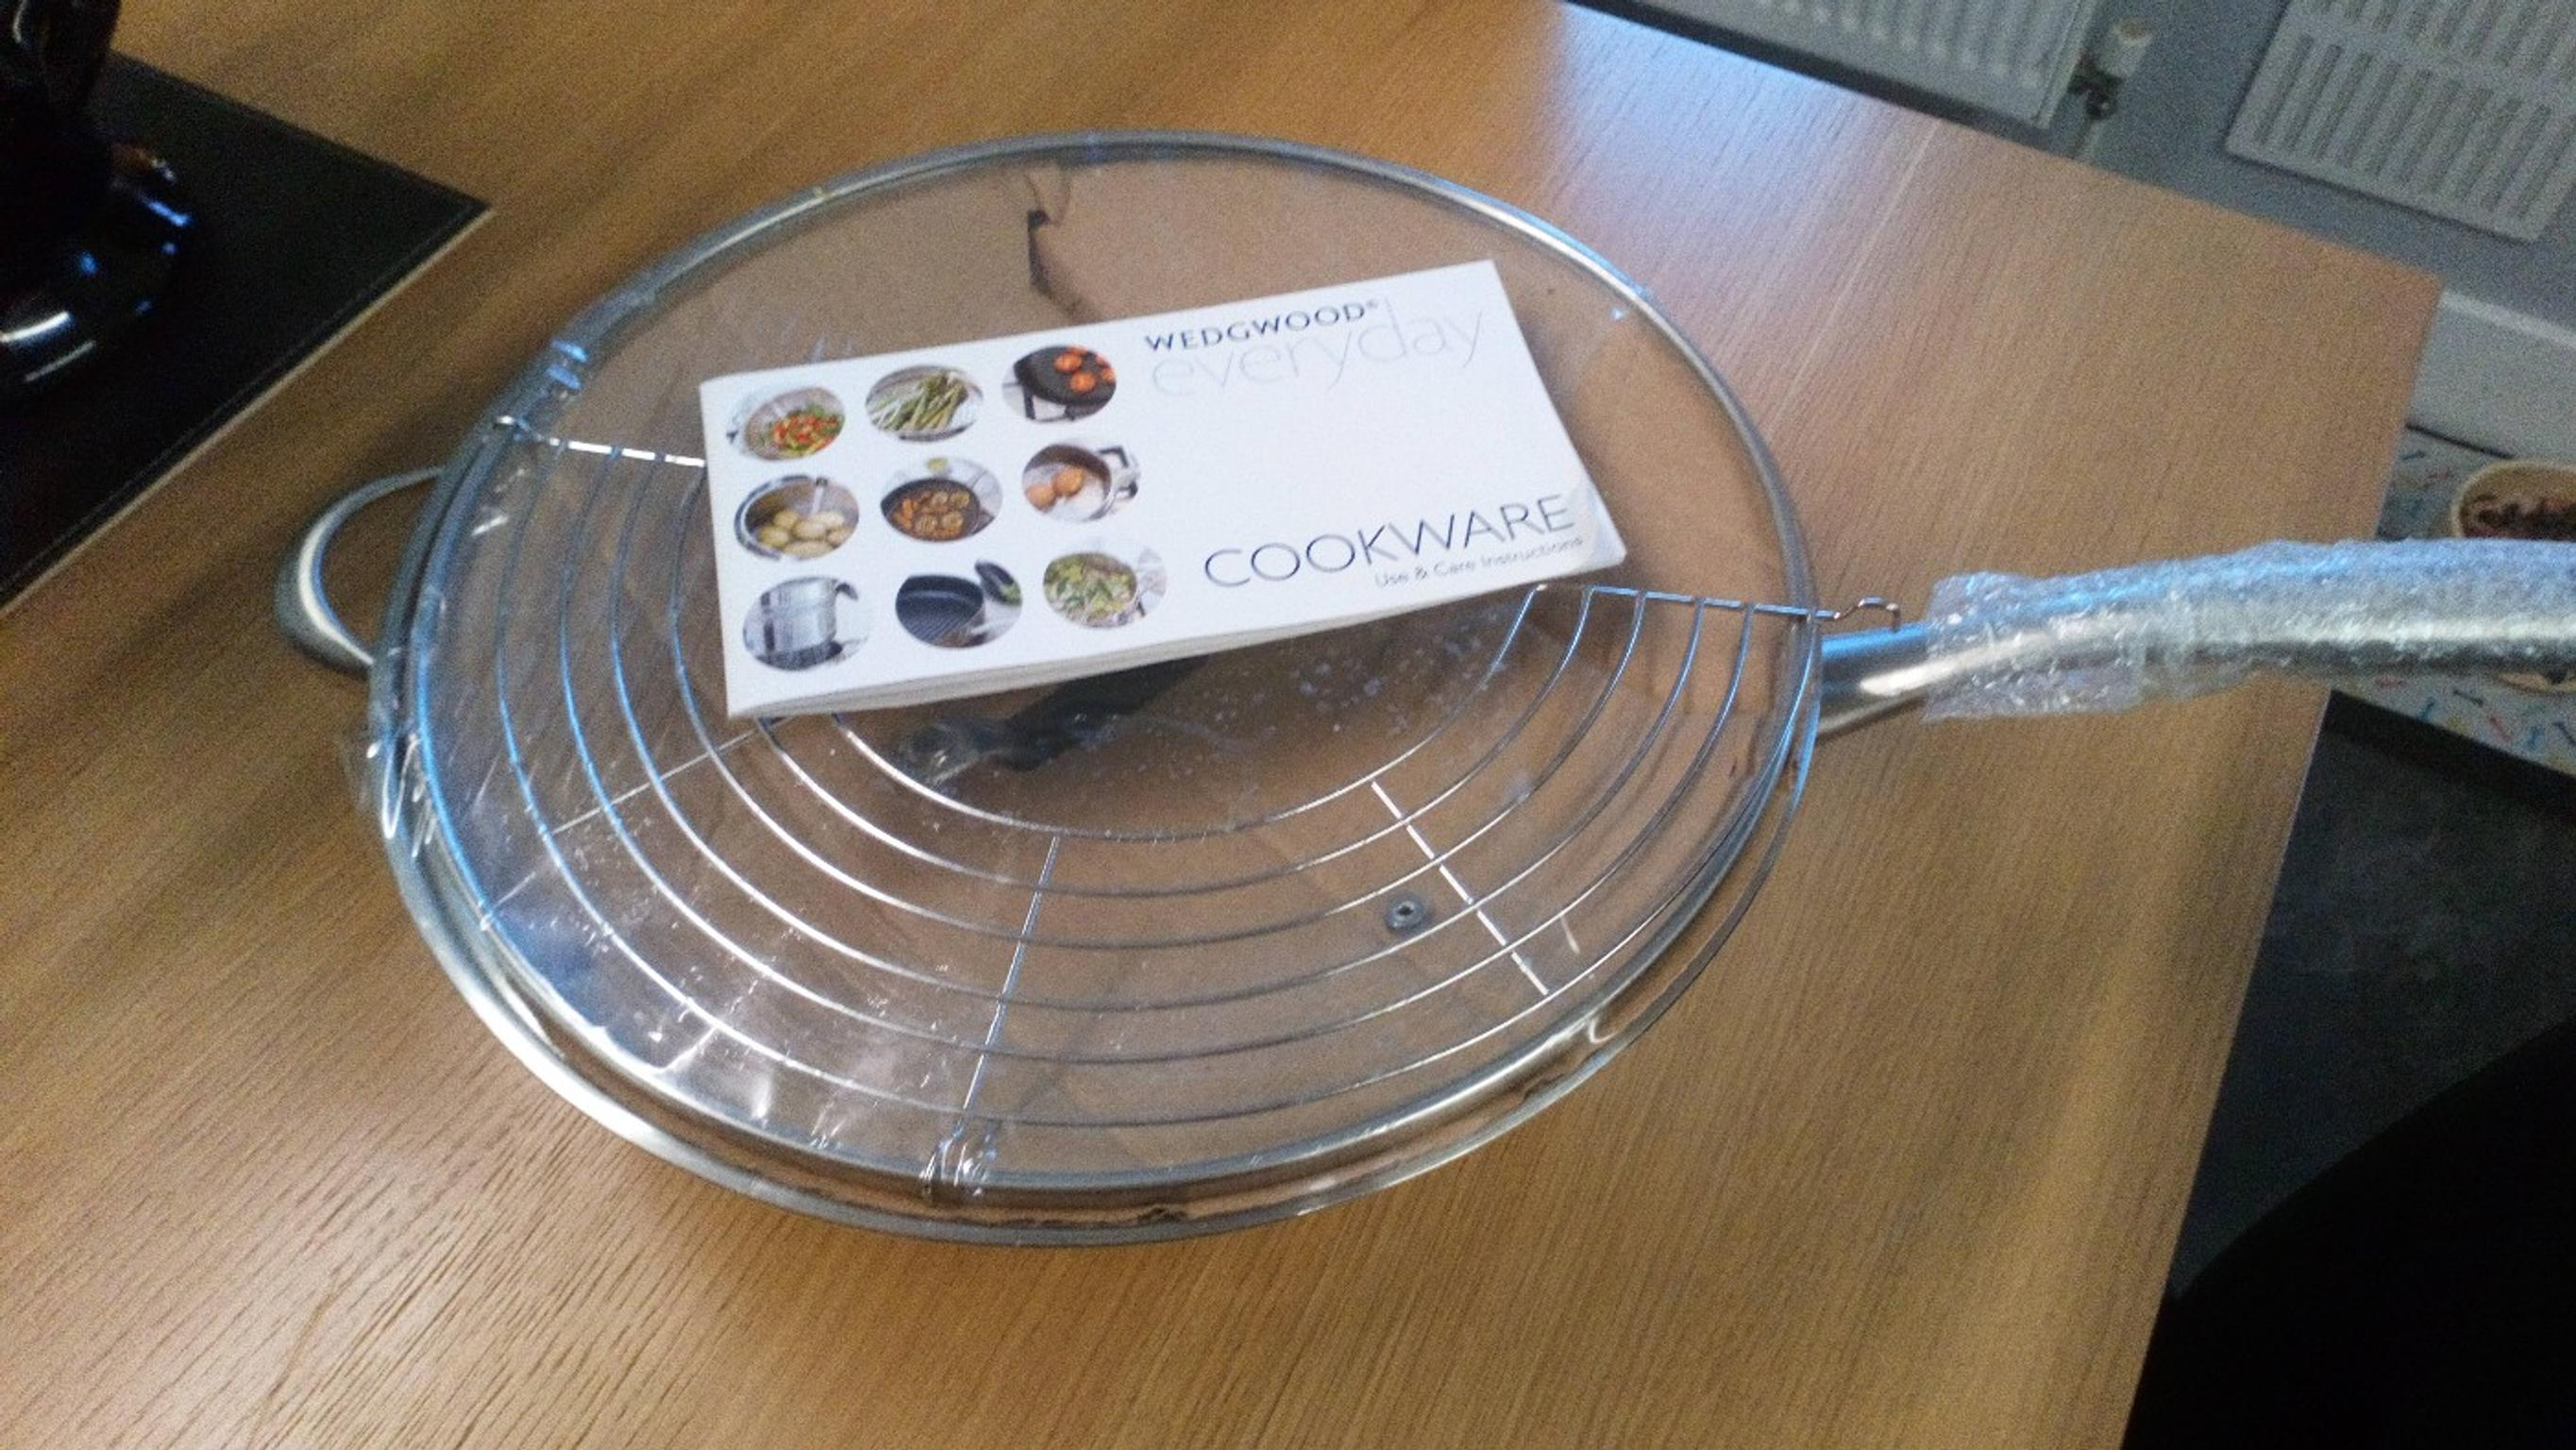 Wedgwood Cookware Stainless Wok In S20